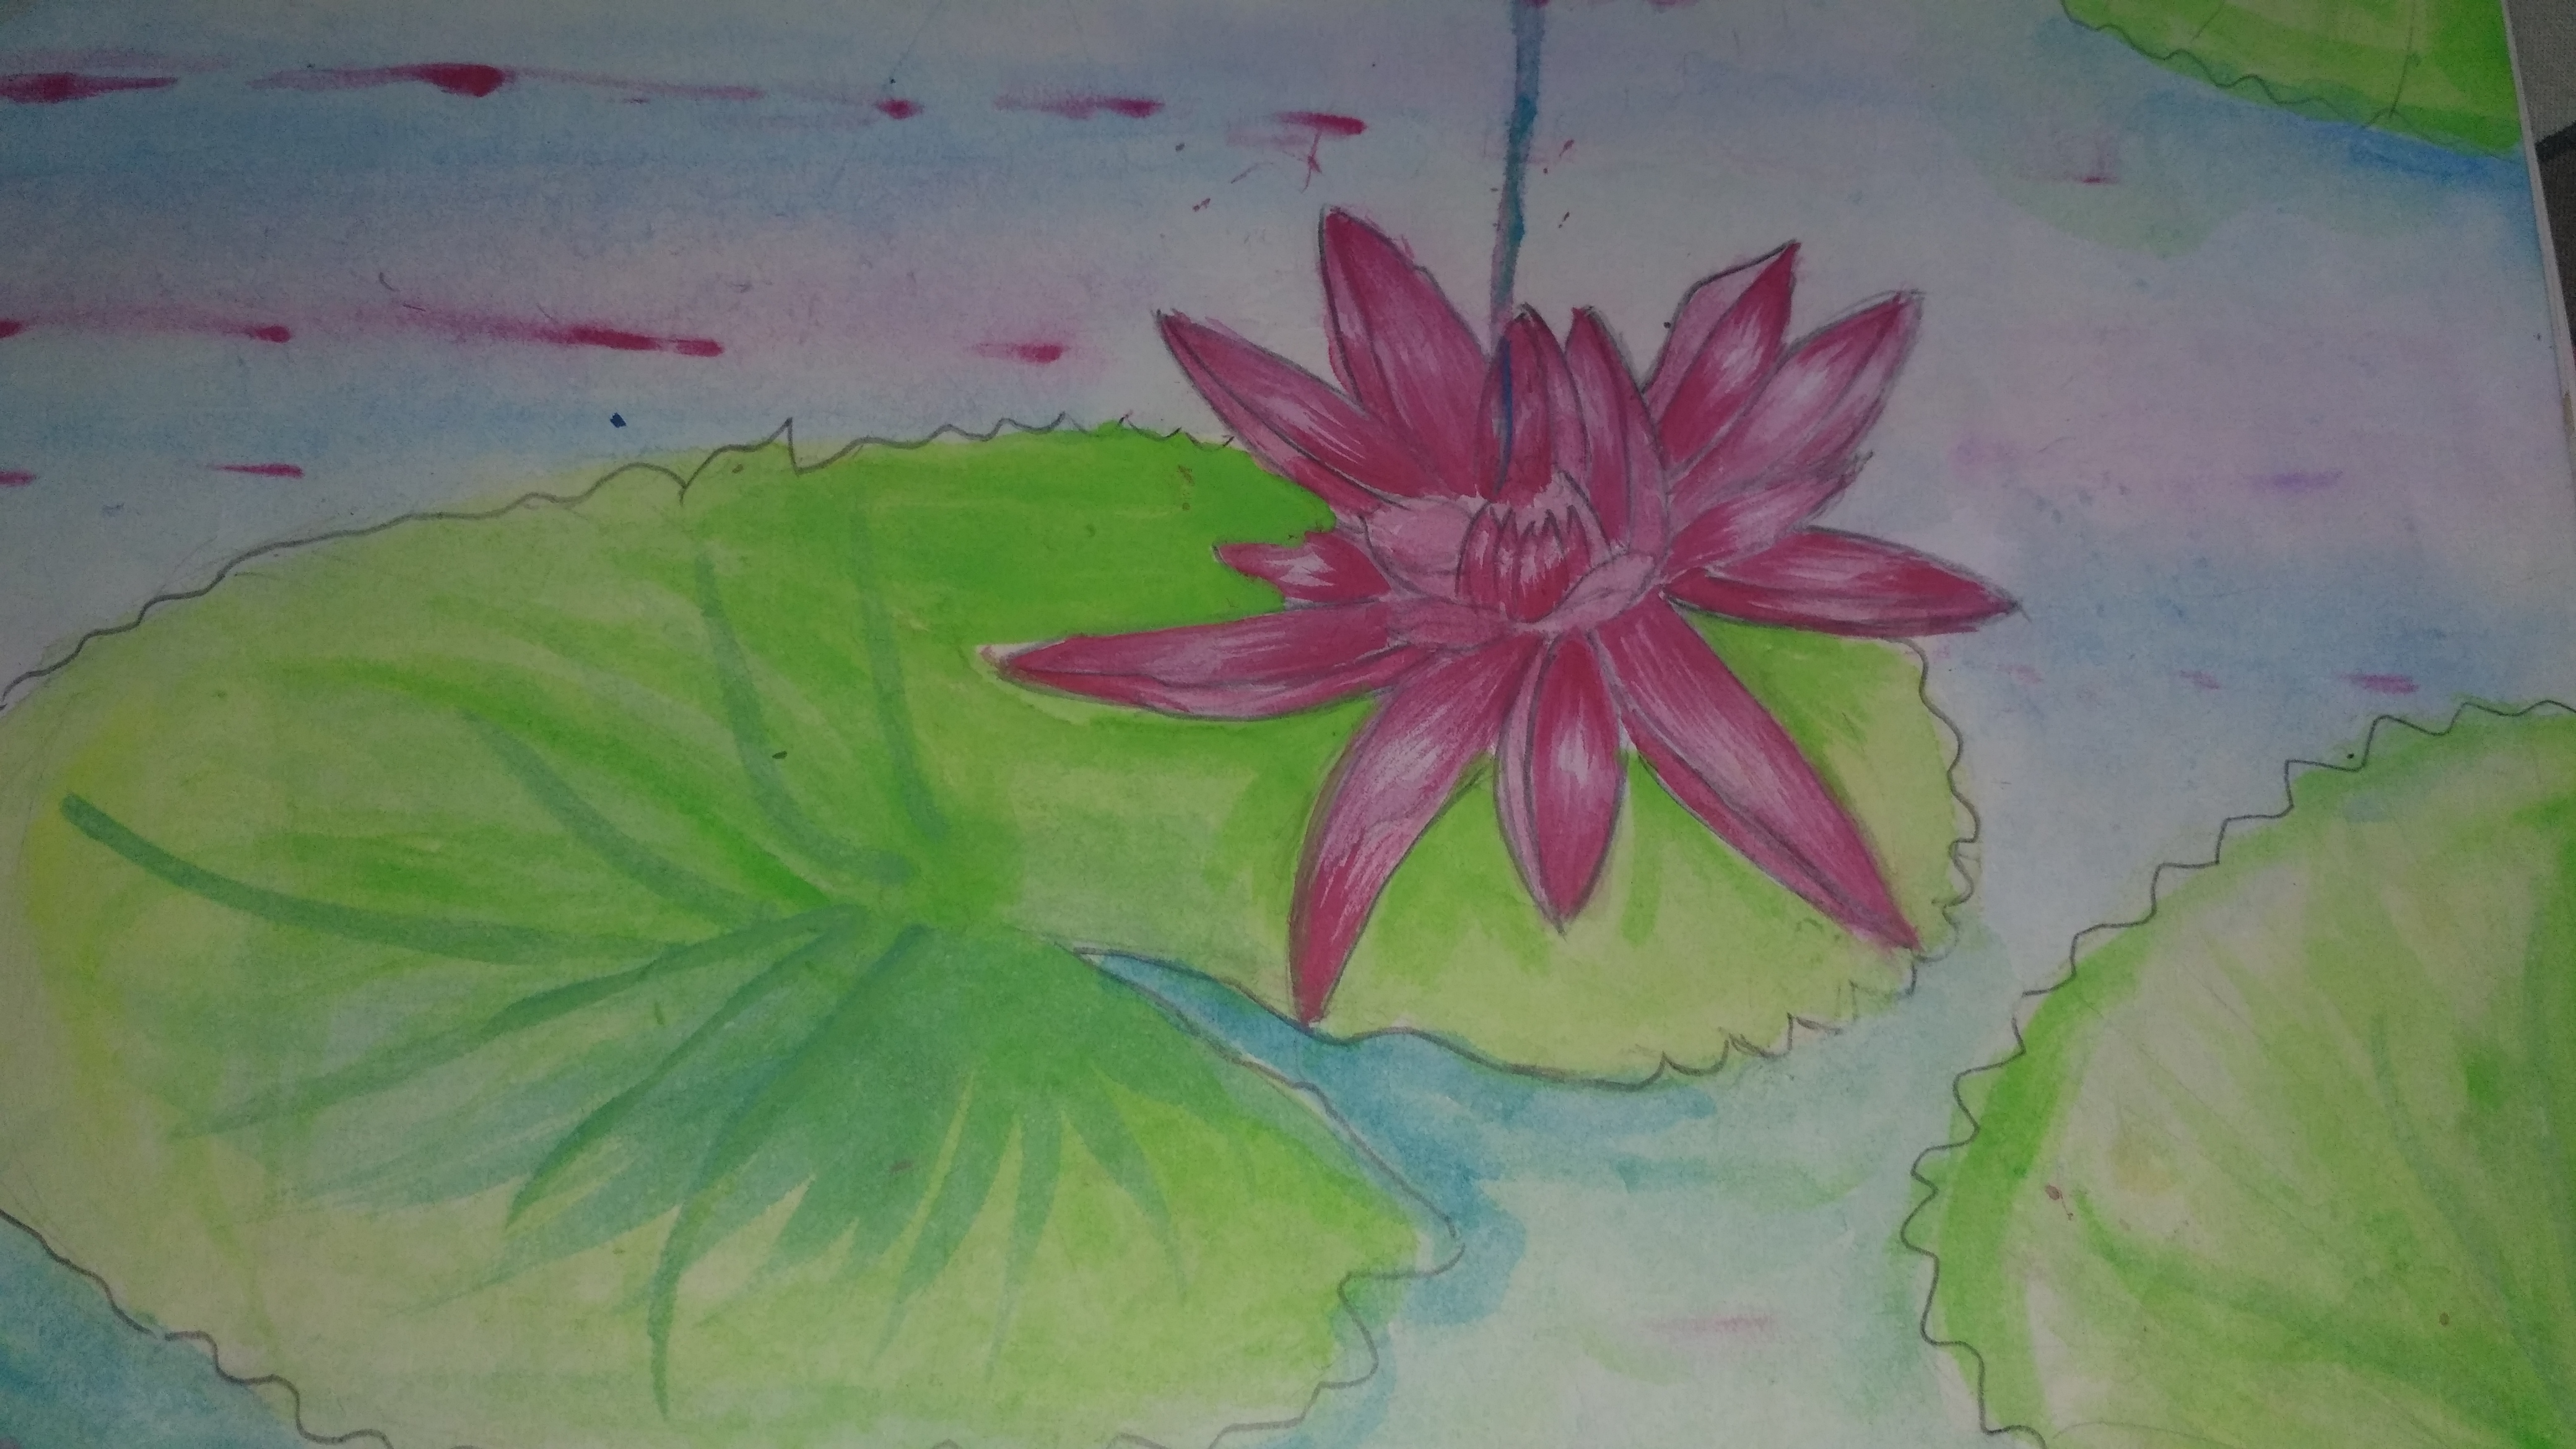 Anuj's Painting of A Lotus